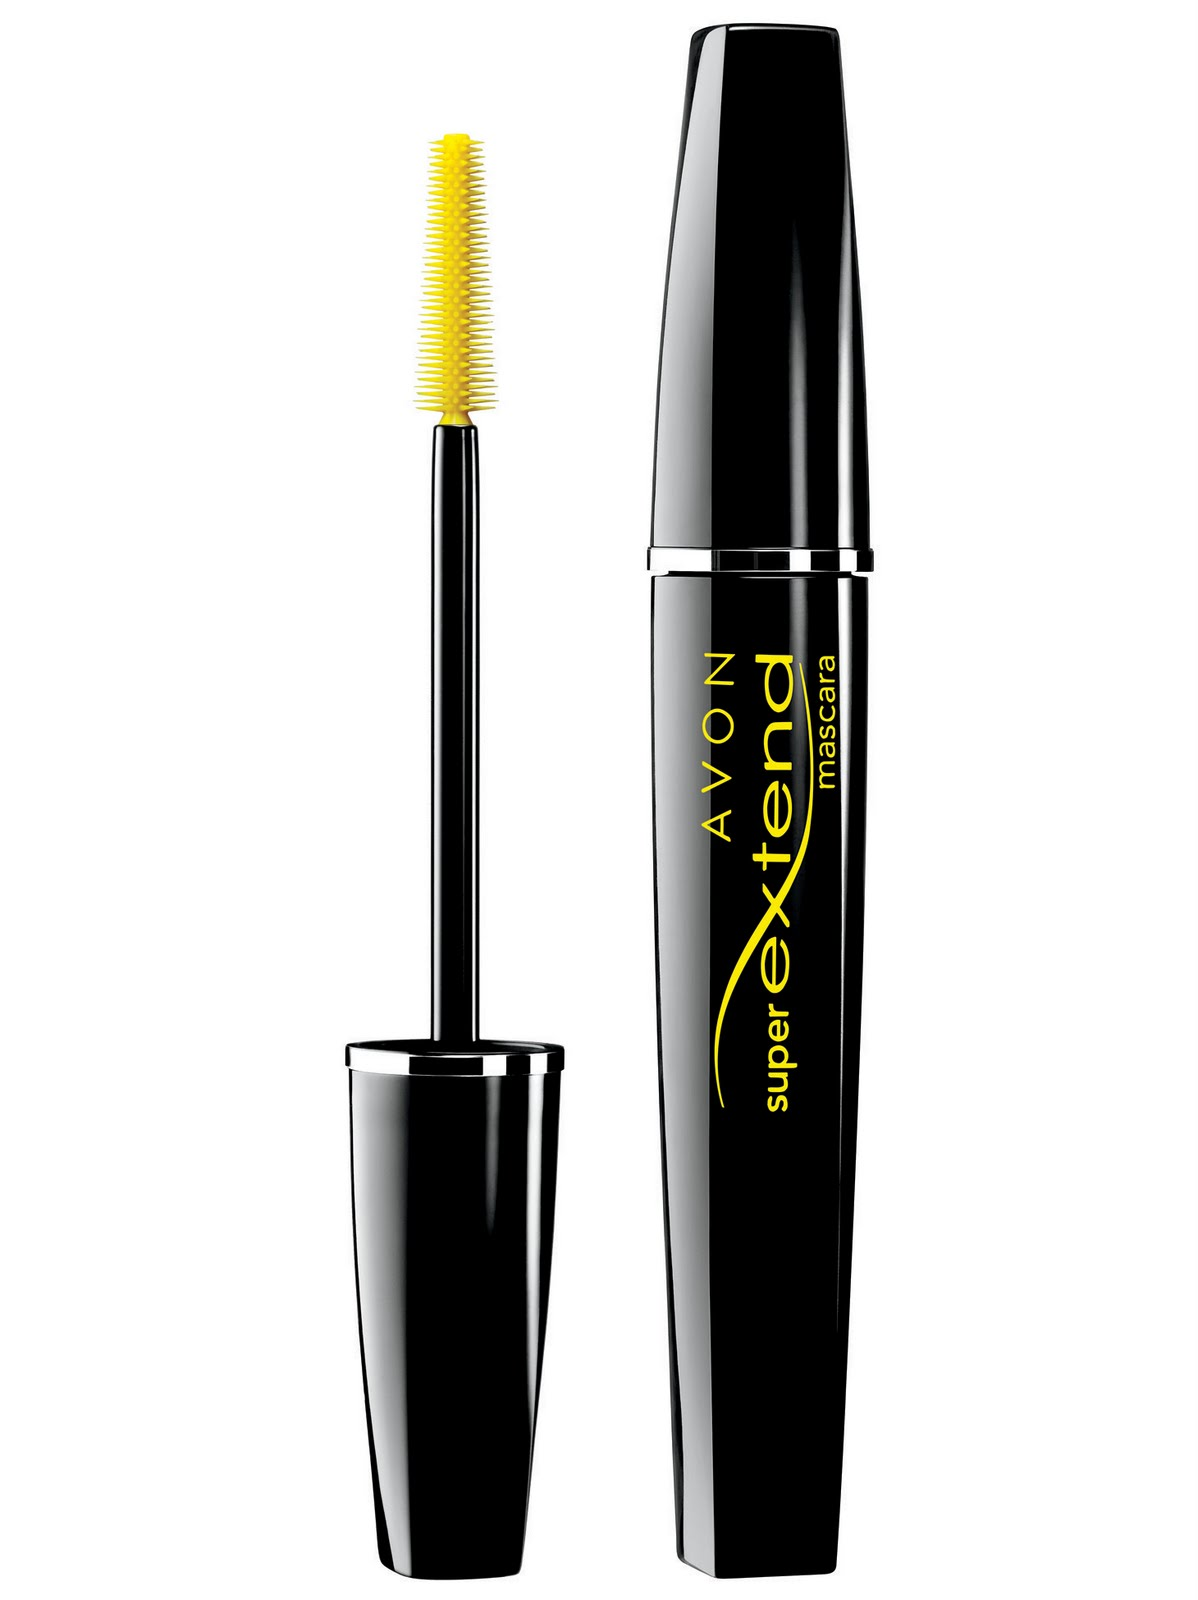 Budget Beauty And More Avon Super Extend Mascara R107 95